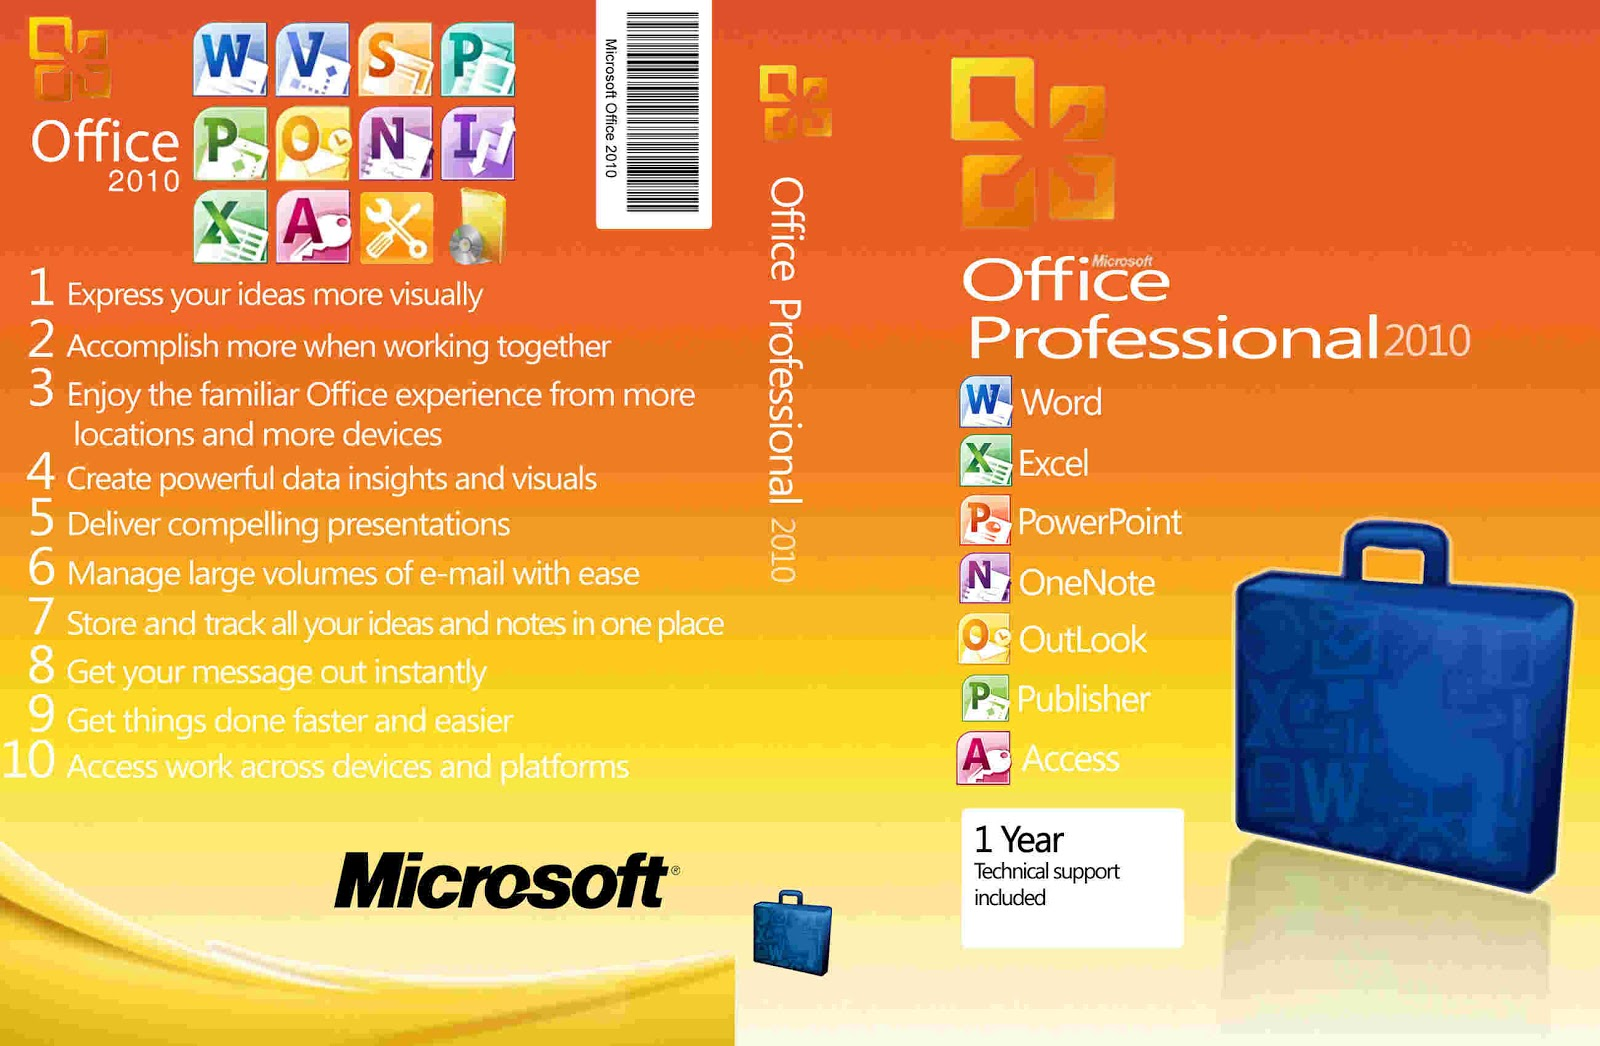 Office 2010 Pro Plus Microsoft Office Professional Plus 2010 Full Version